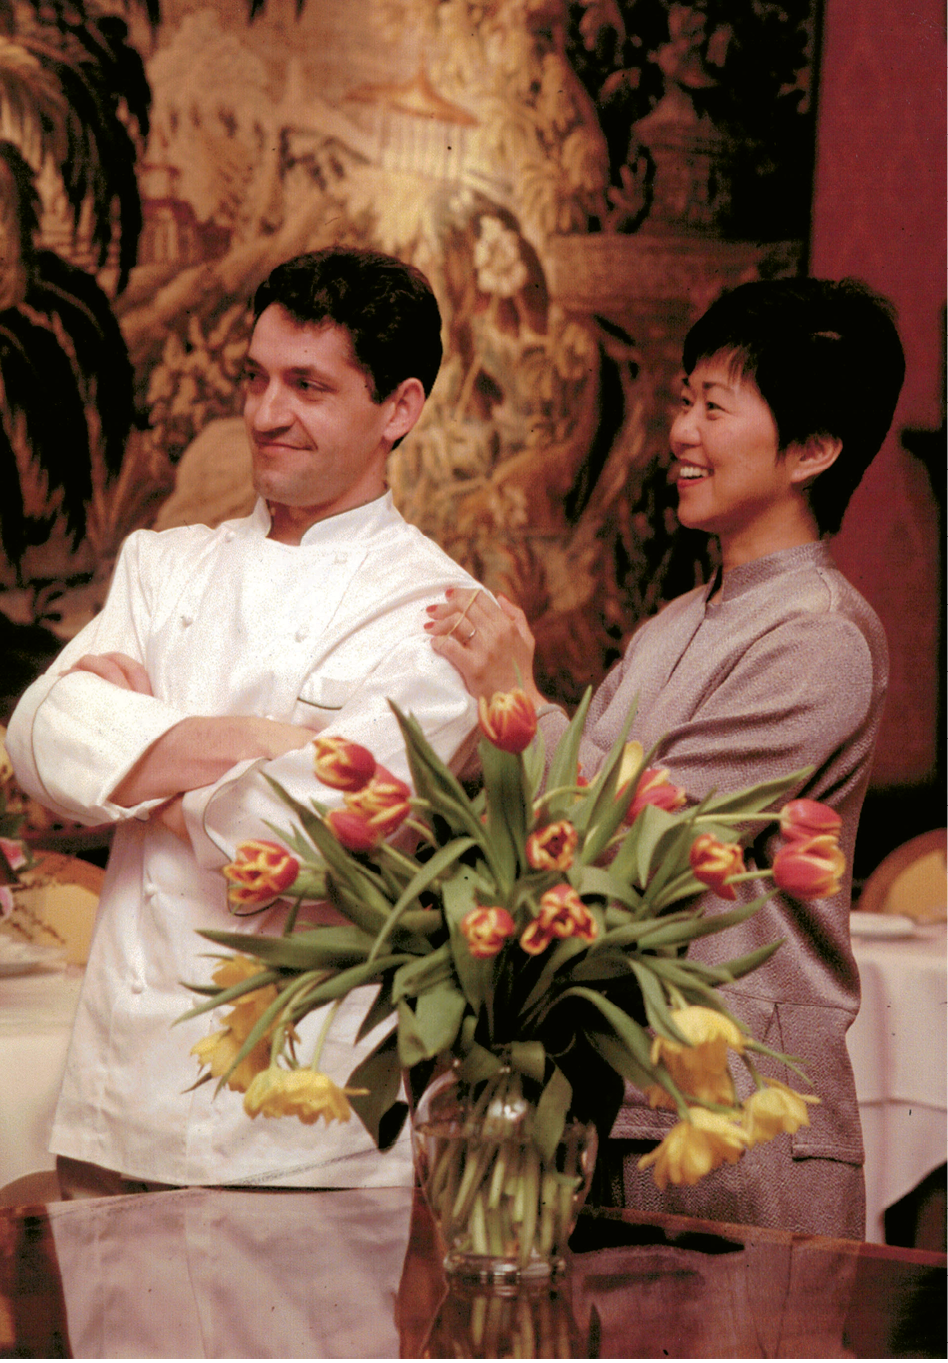 Chef-owner José de Anacleto in the dining room with his wife, Su-Chen; the couple resides in Albertville, France, where they own and operate Hôtel Restaurant Million.